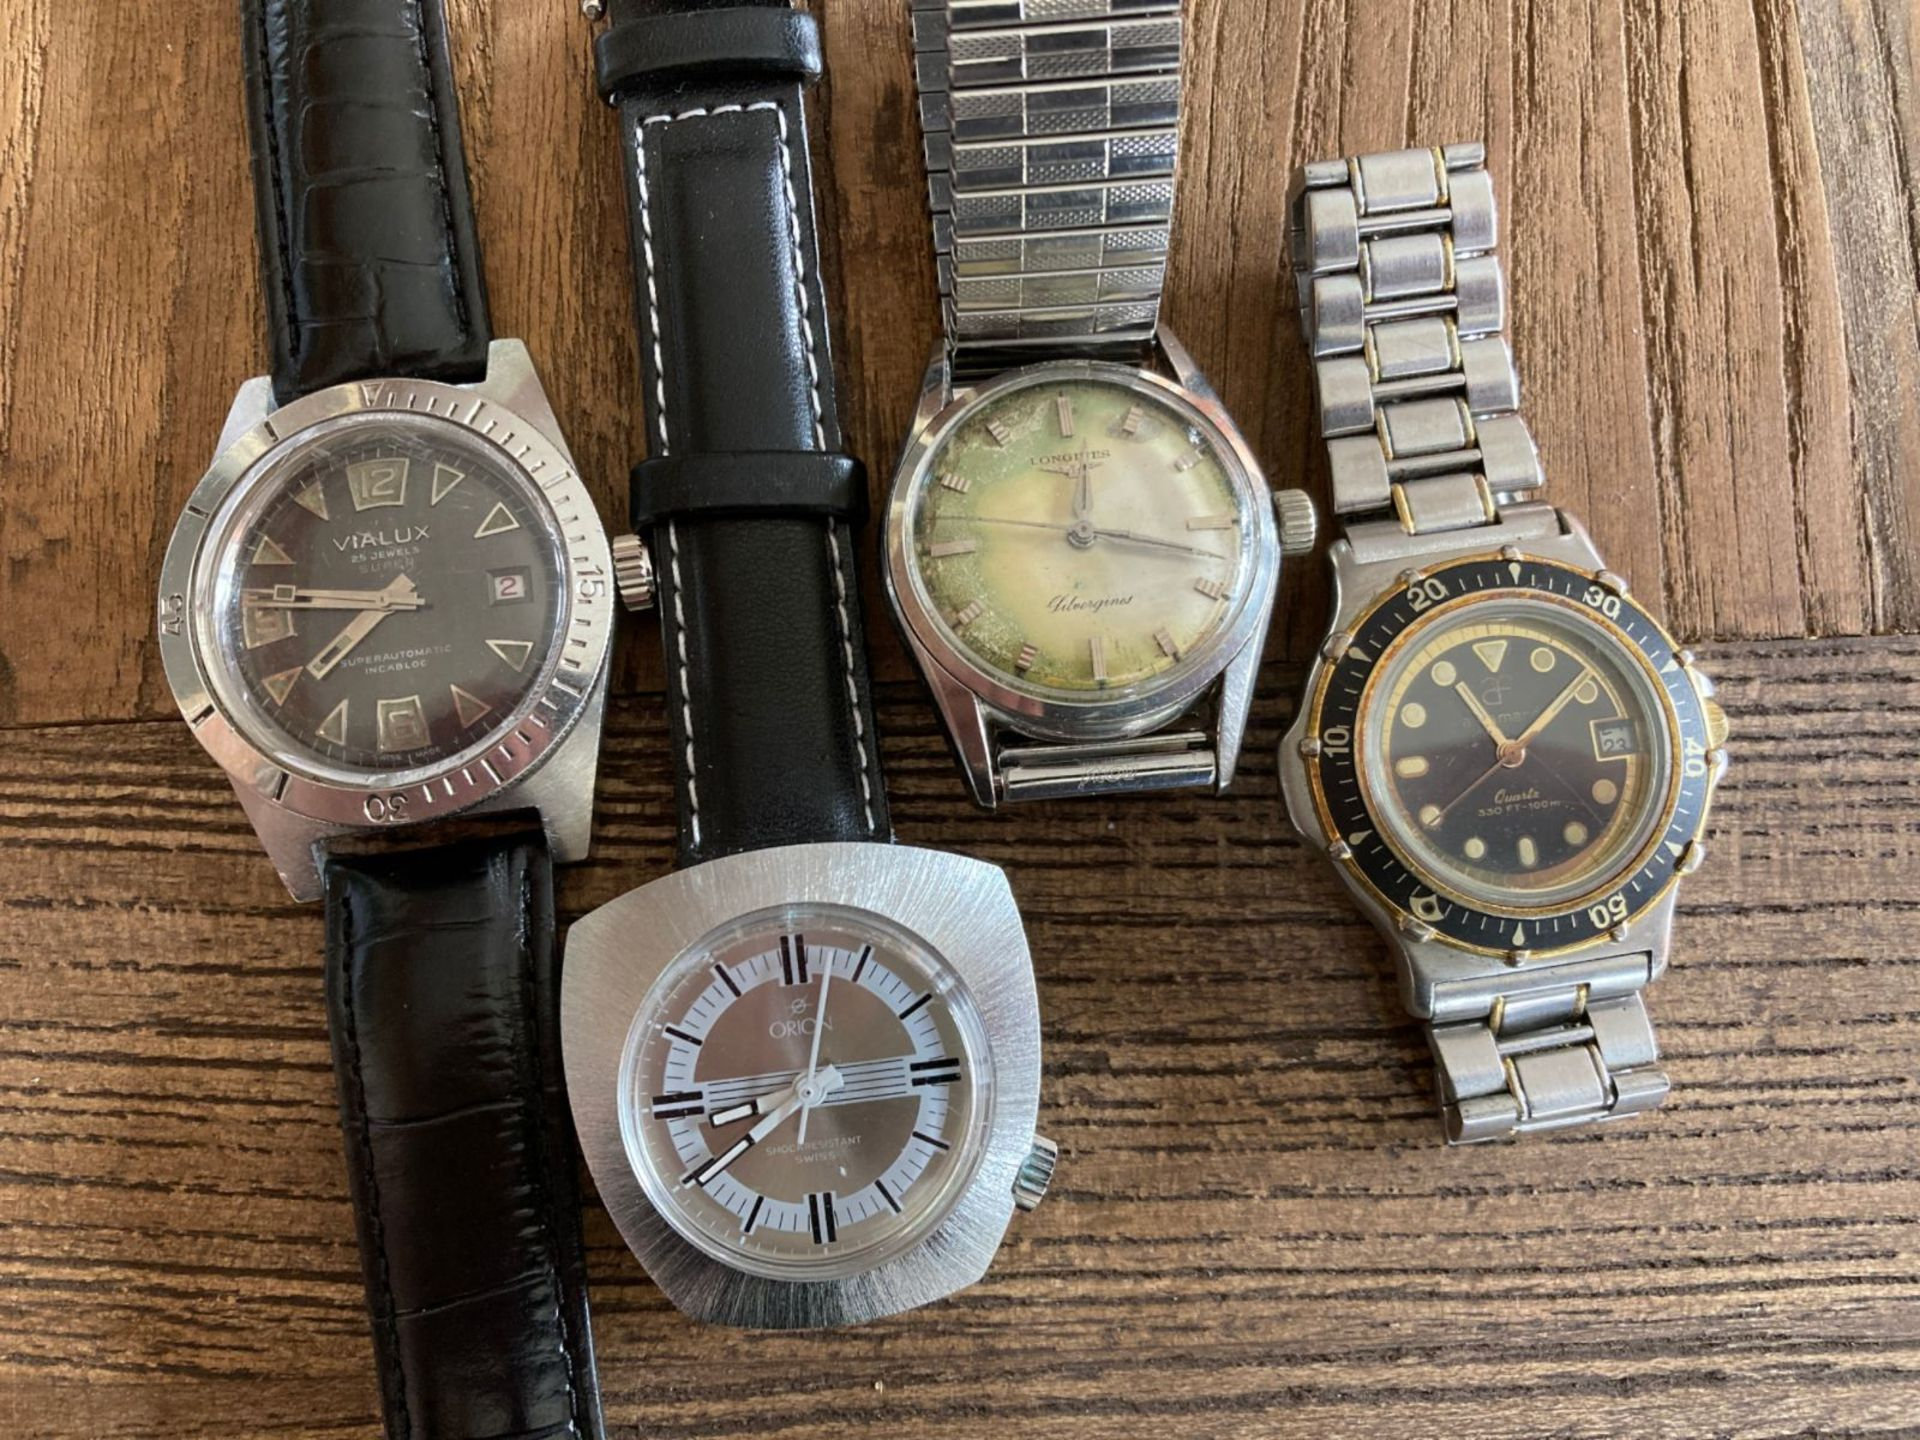 MIXED WATCHES INC LONGINES, ORION, VIALUX